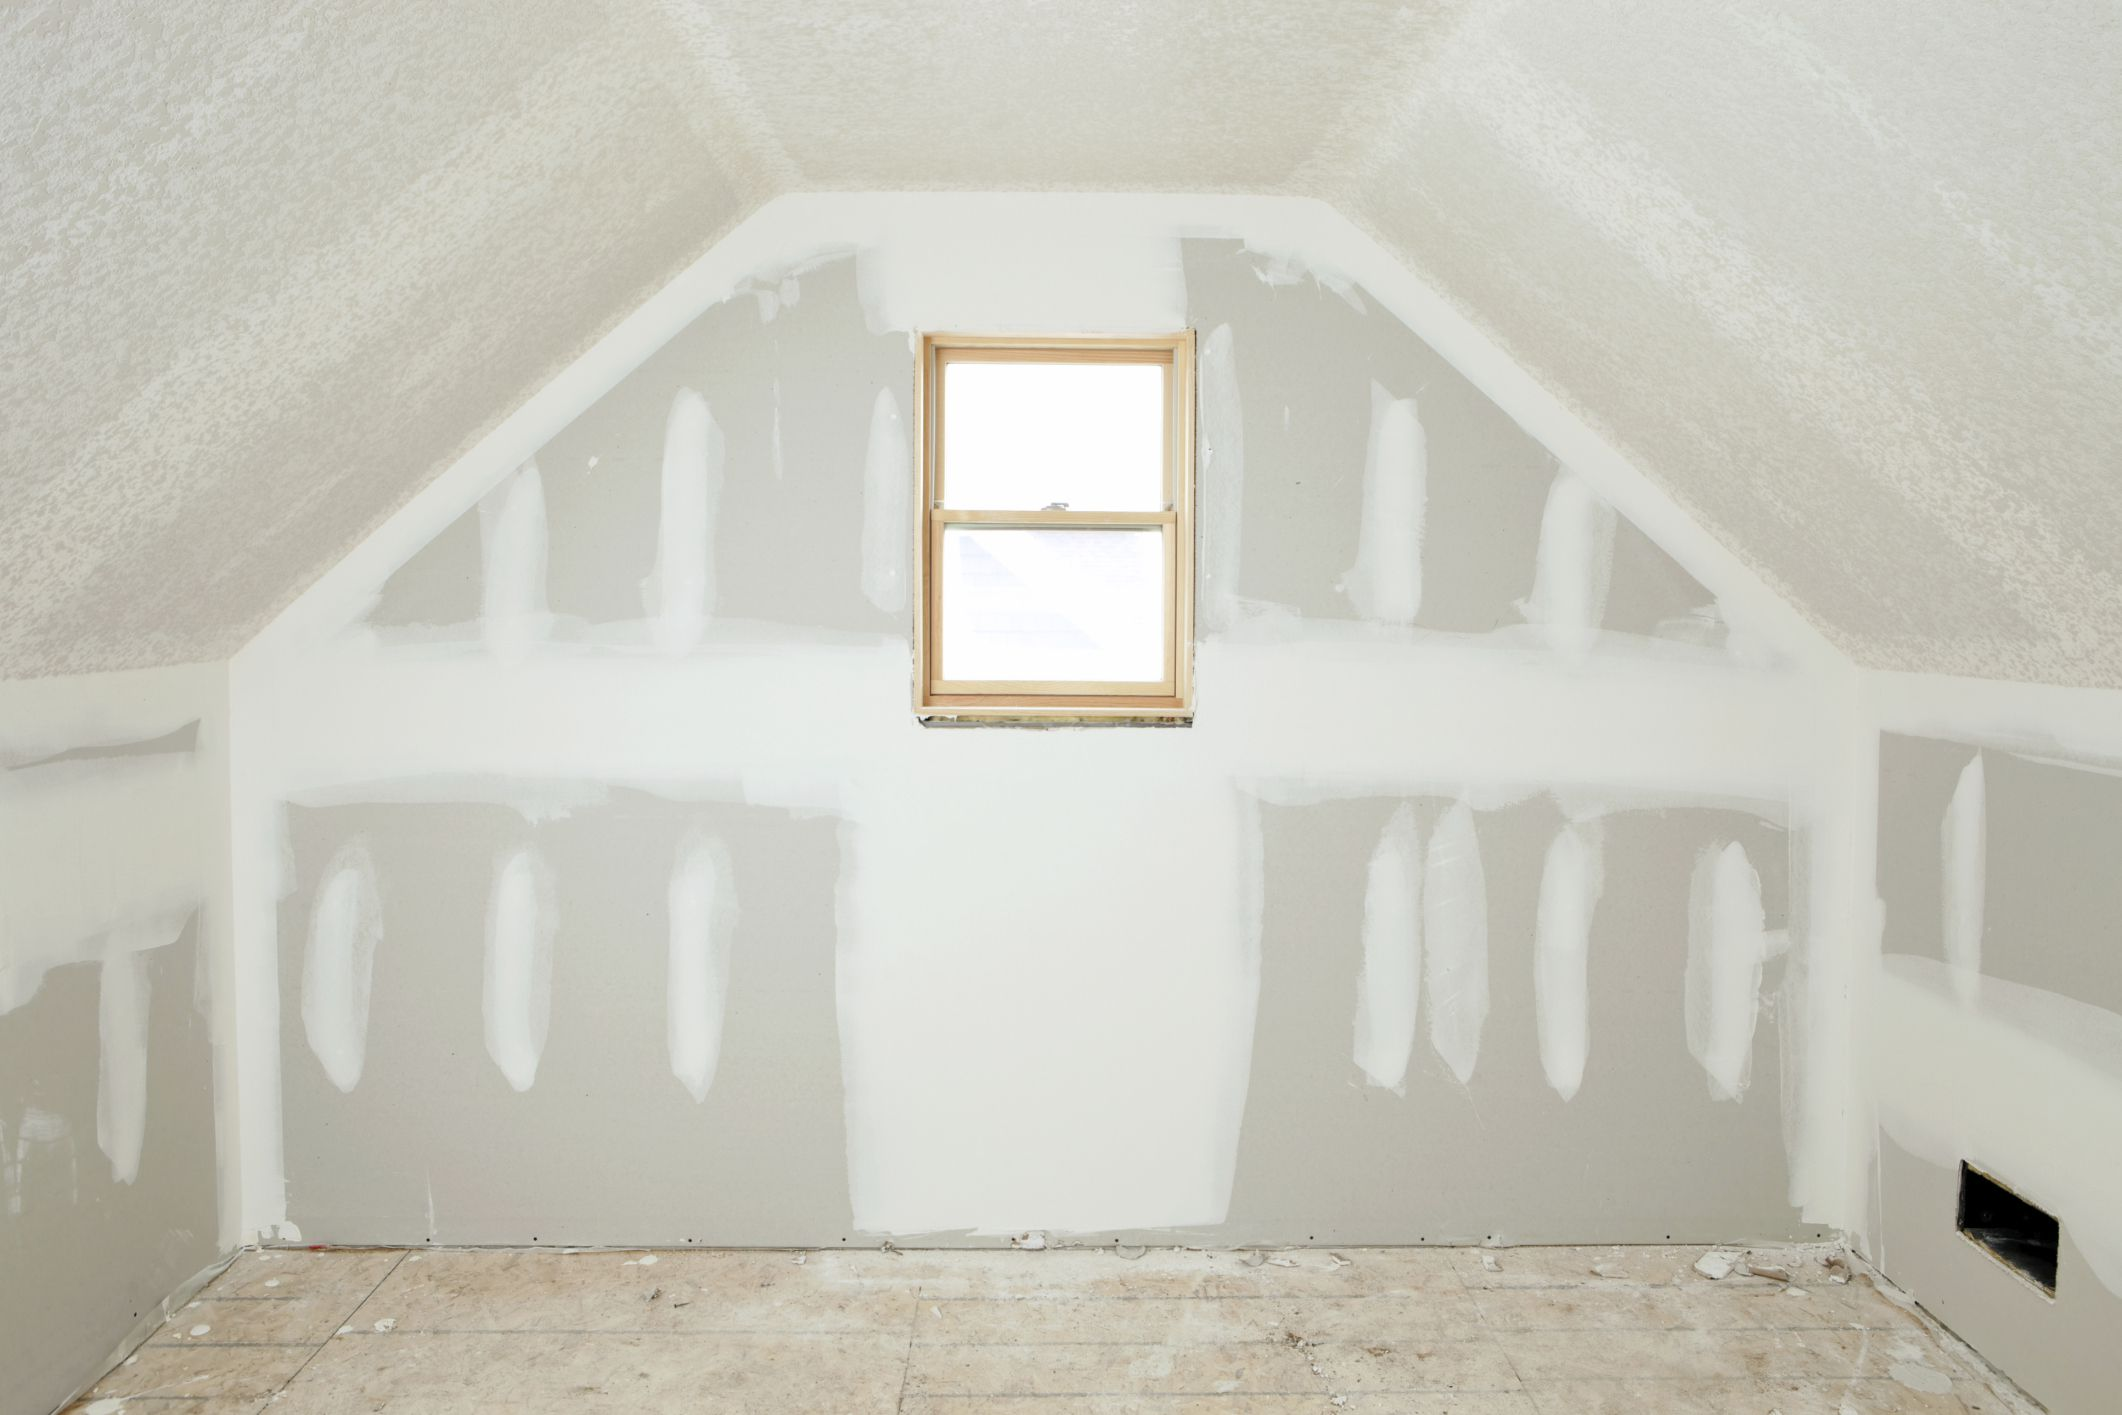 Wet Sanding Drywall Mud Helps Avoid Room Dust